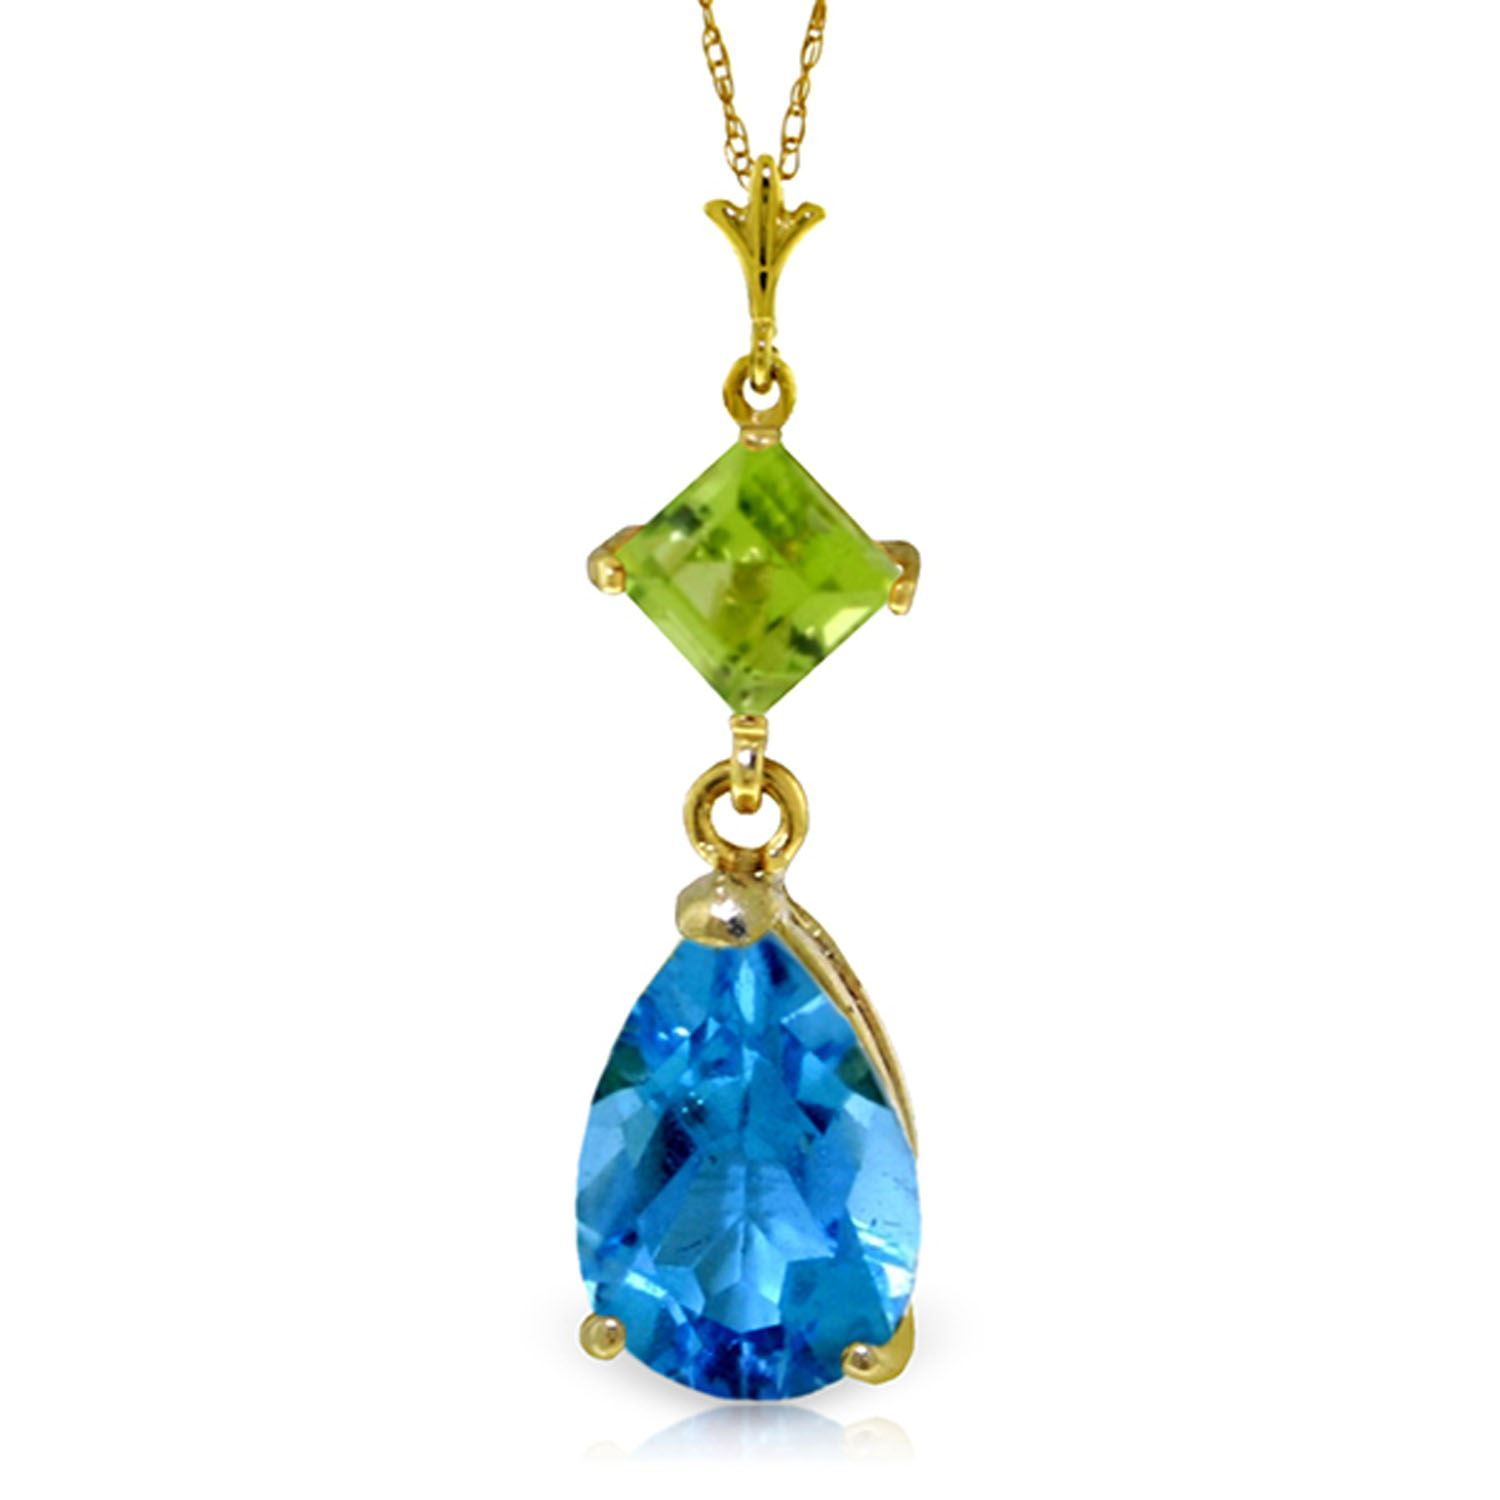 ALARRI 1.15 CTW 14K Solid Gold About A Girl Blue Topaz Necklace with 18 Inch Chain Length